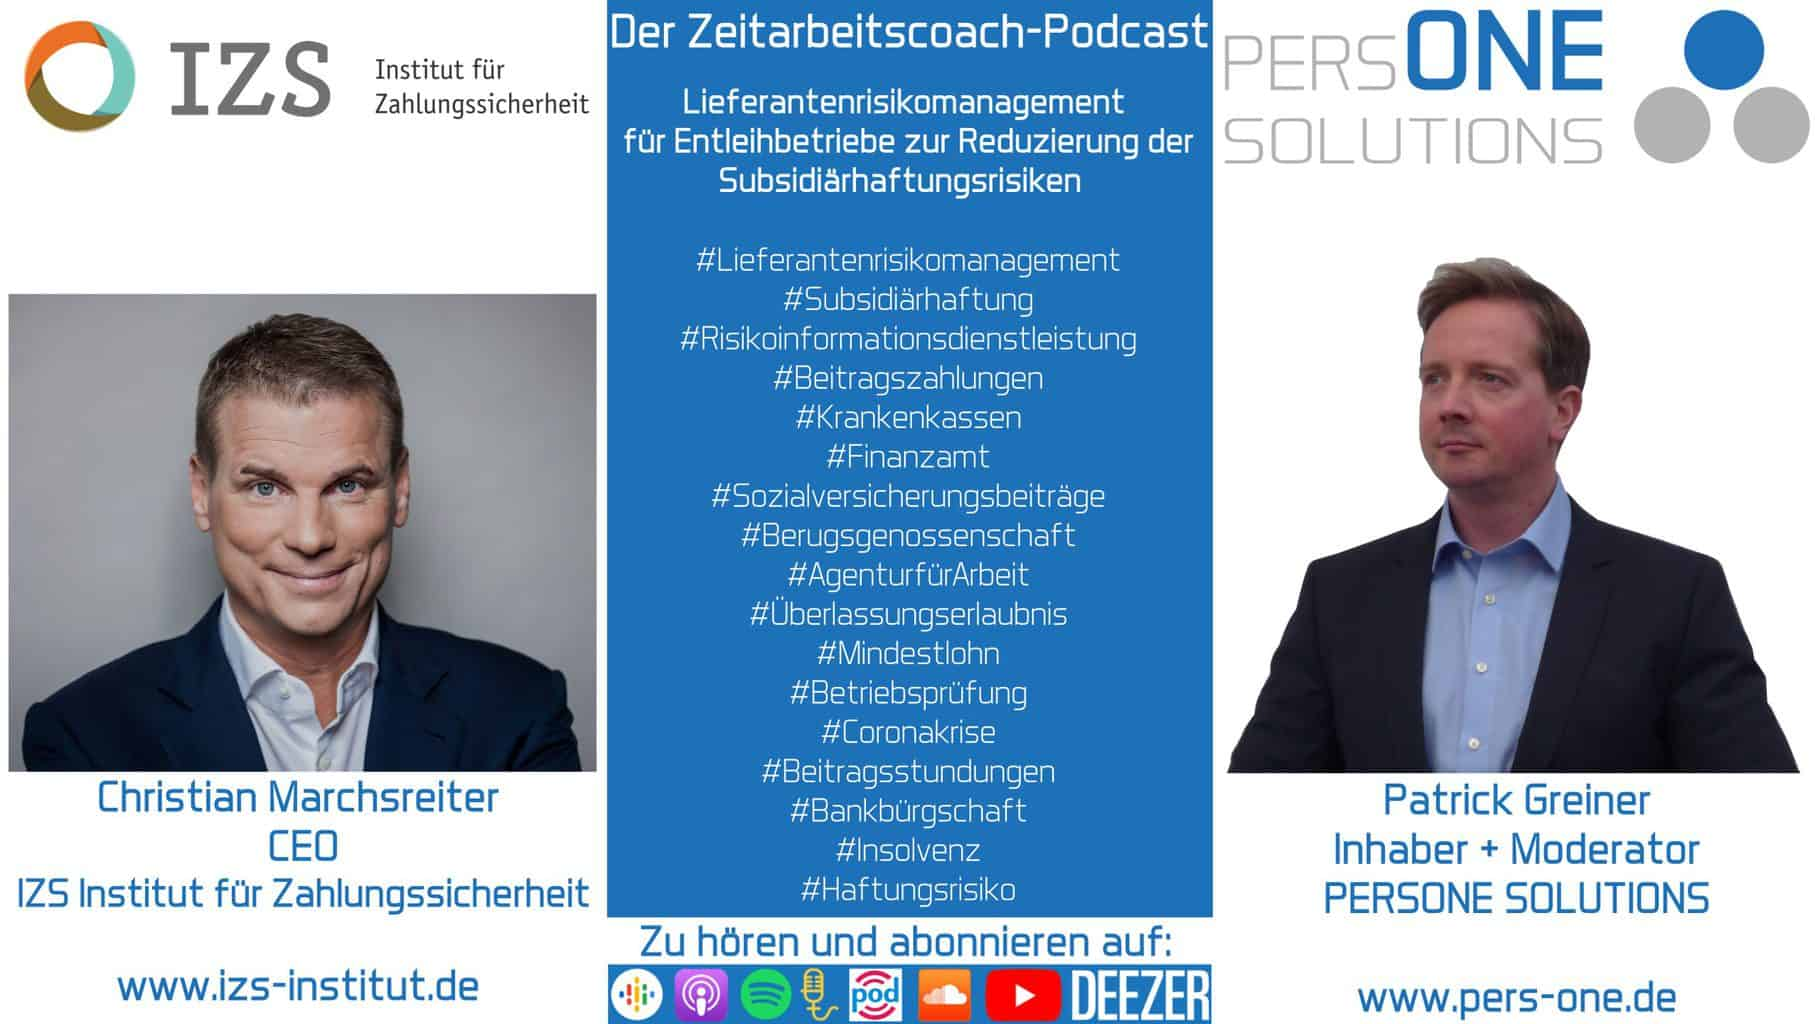 Marchsreiter, Carsten_IZS_Podcast YT2 Grafik-Interview_Zeitarbeitscoach-Podcast